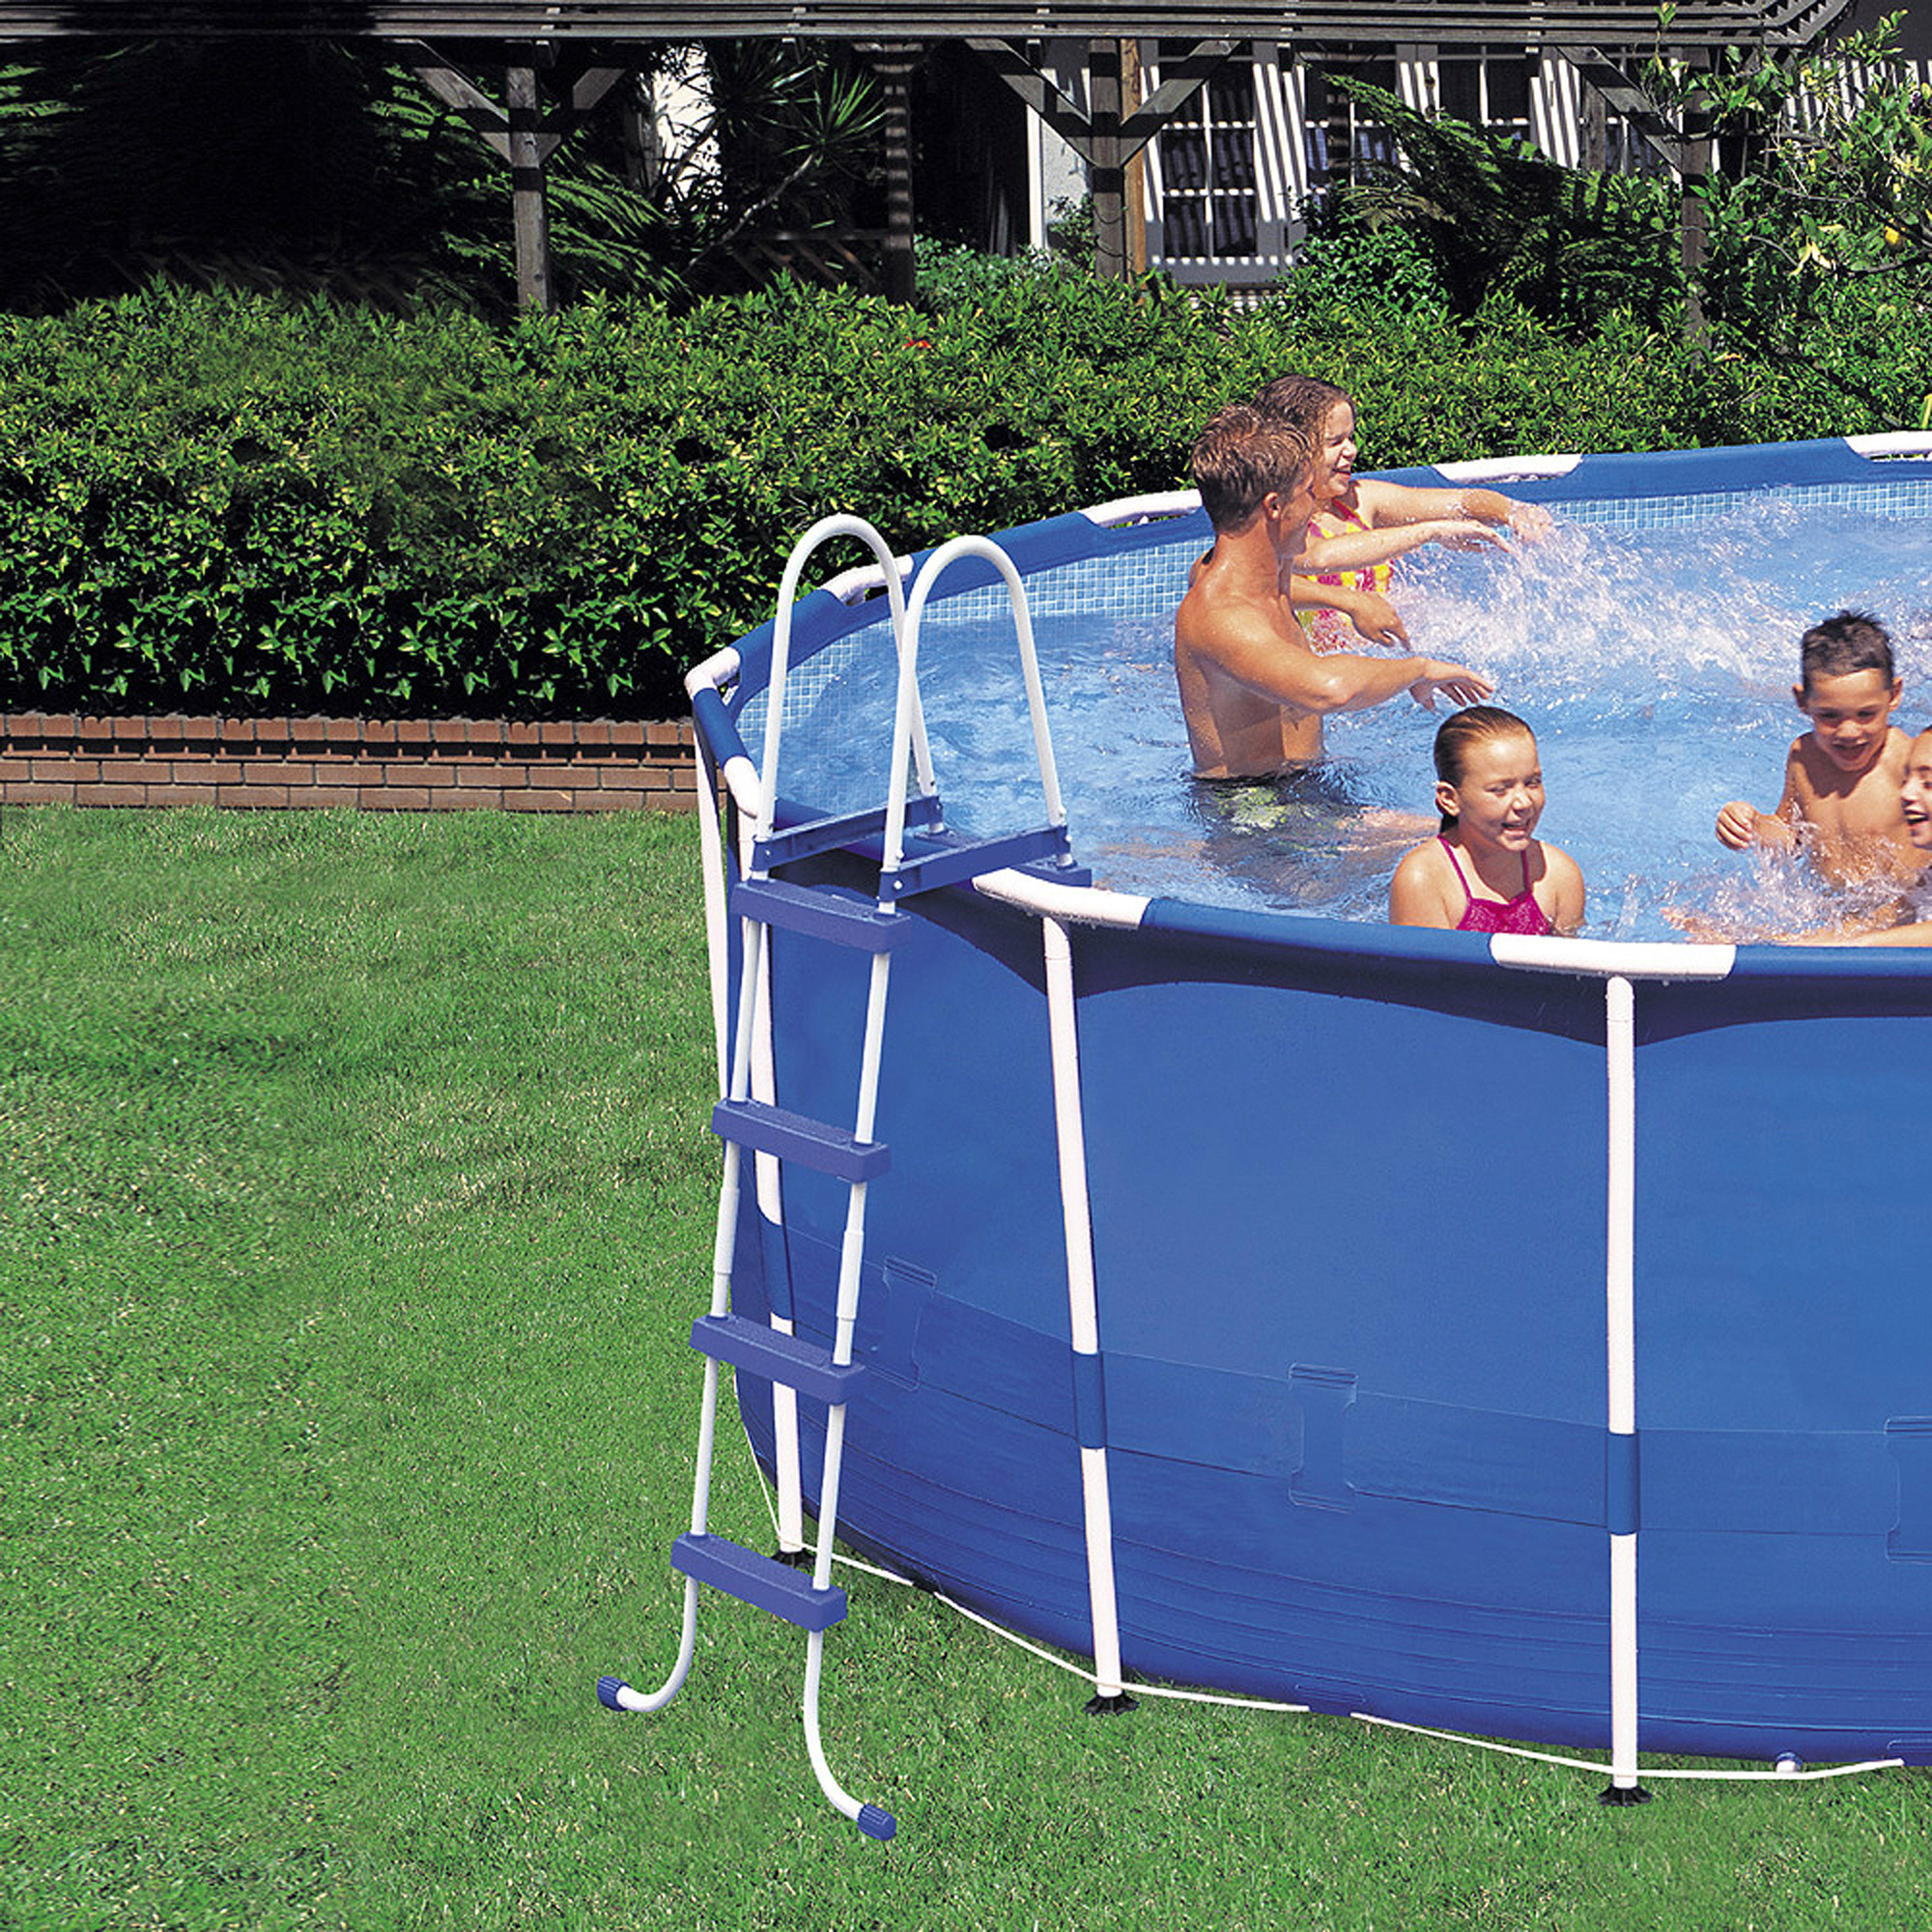 intex 15 39 x 48 metal frame swimming pool ebay. Black Bedroom Furniture Sets. Home Design Ideas